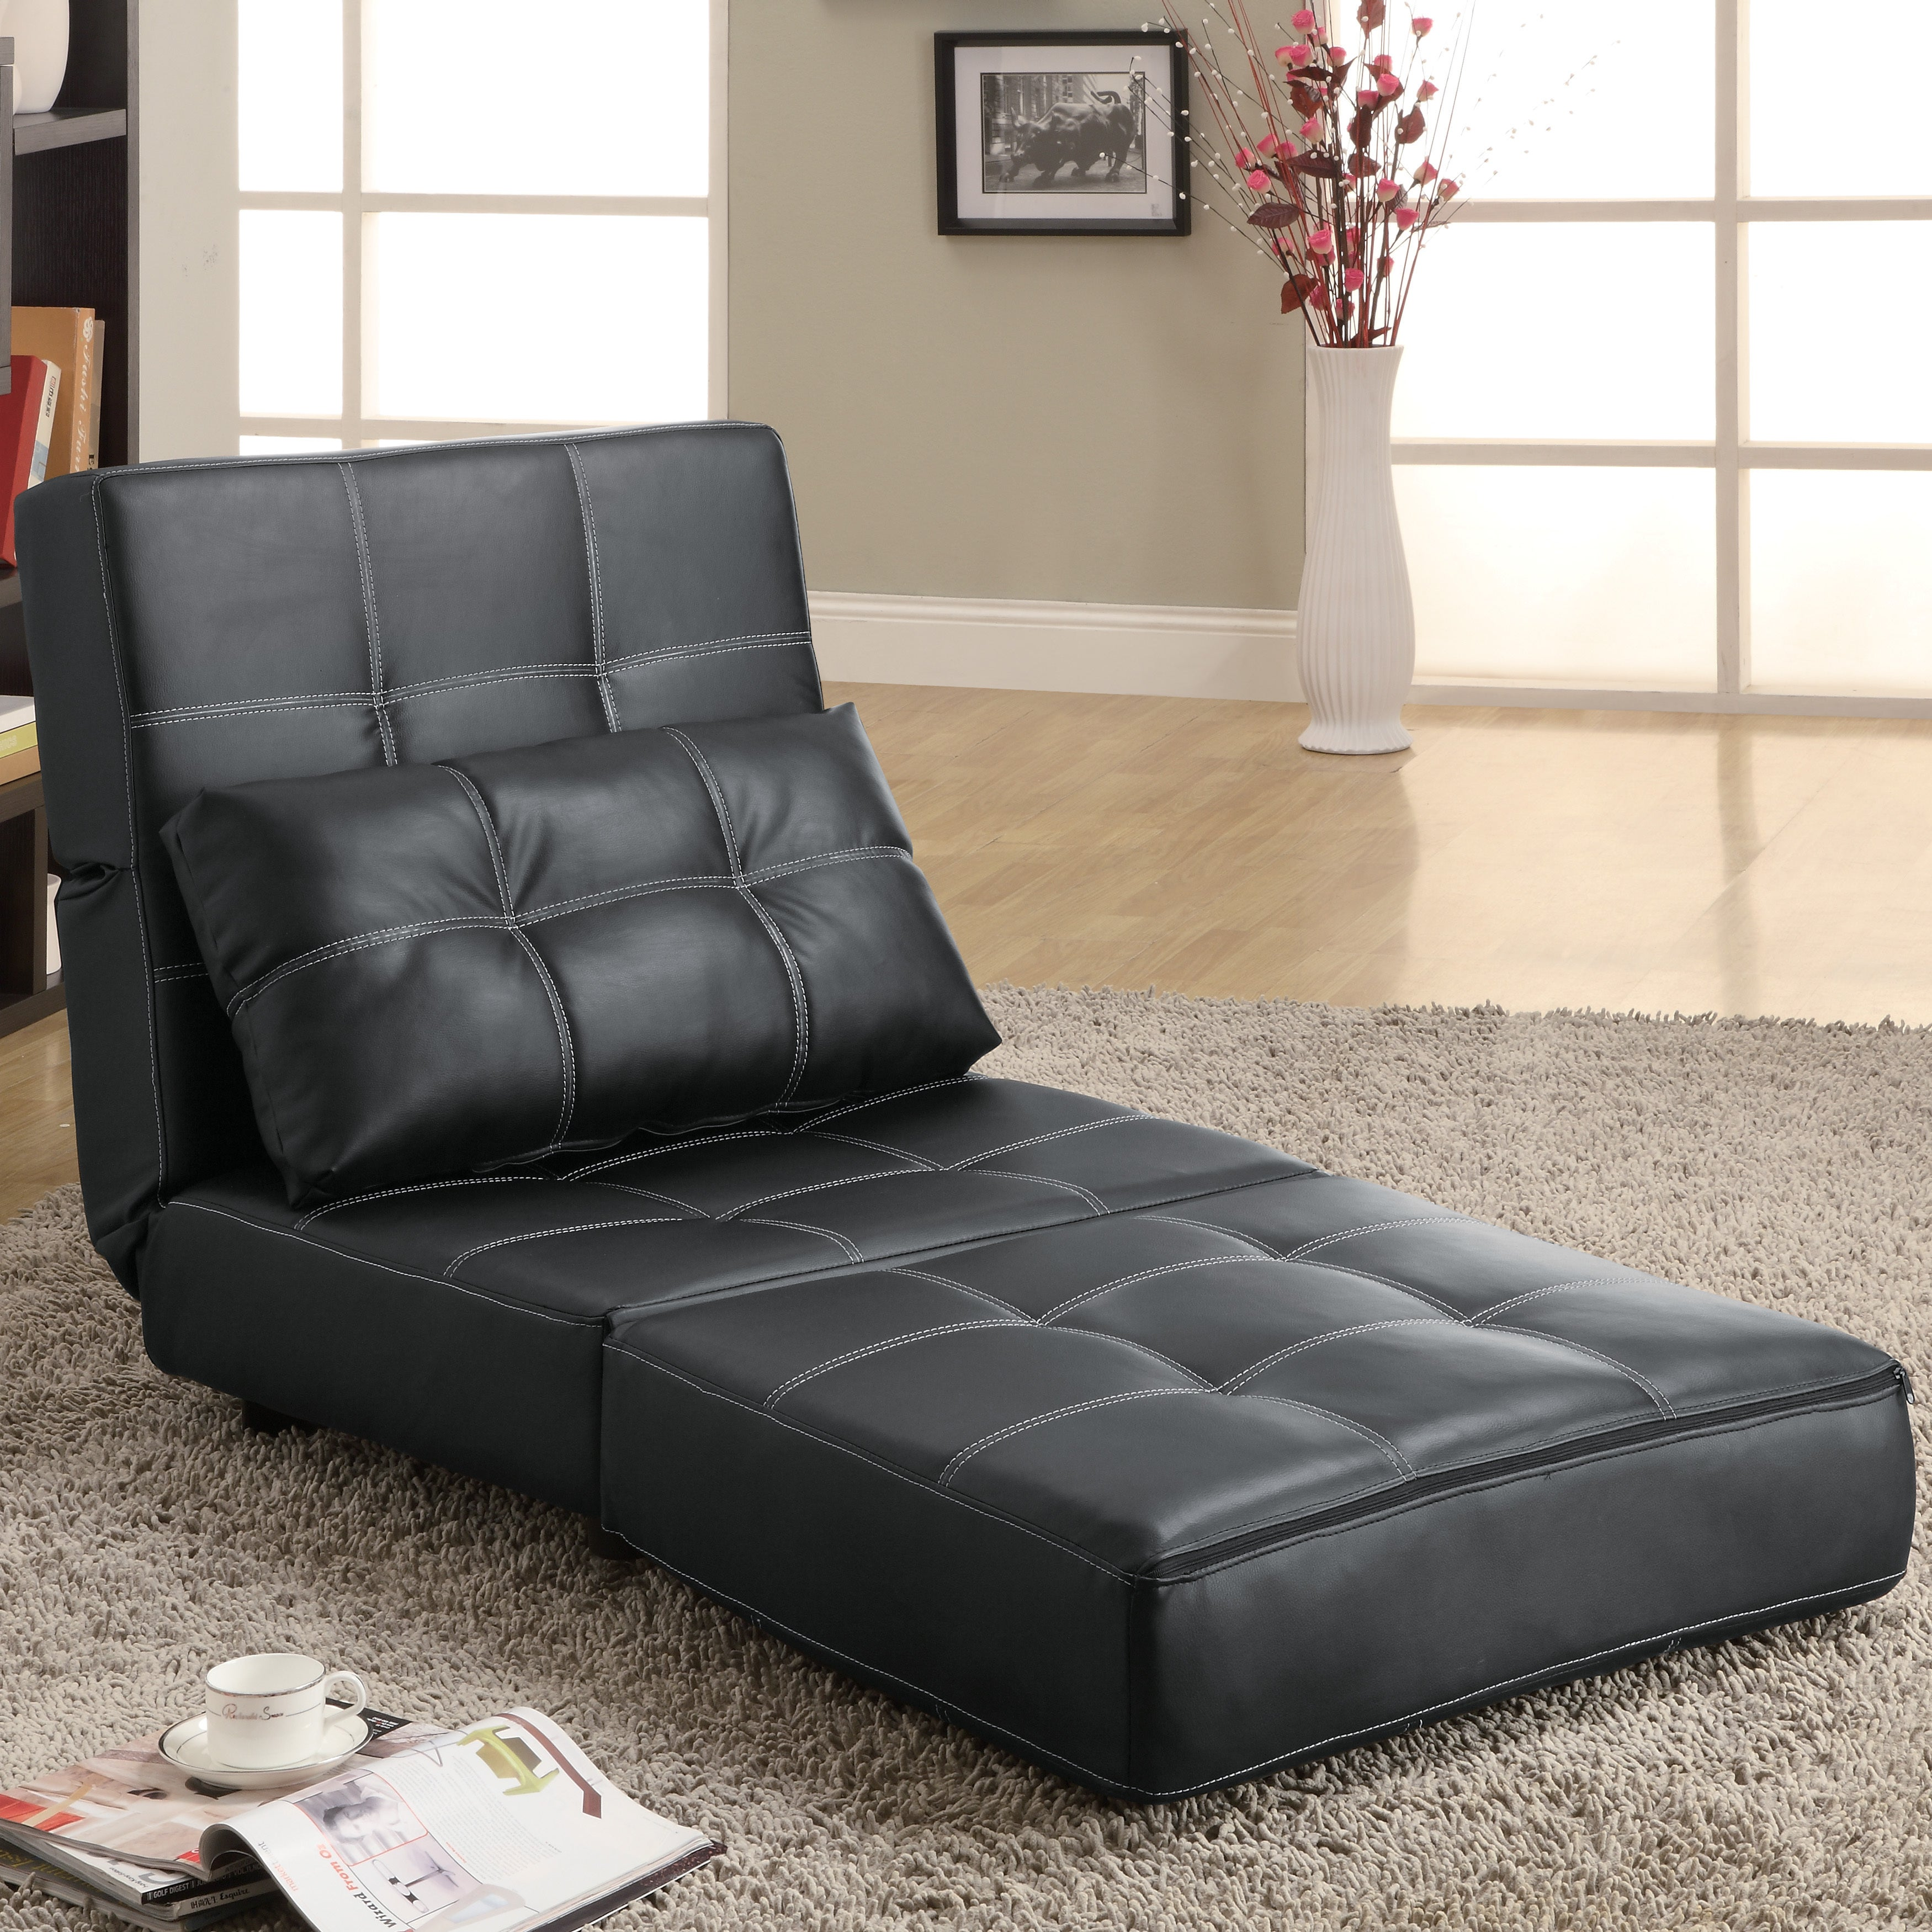 Coaster Company Black Accent Lounge Chair Futon Sofa Bed - Free Shipping  Today - Overstock.com - 16080242